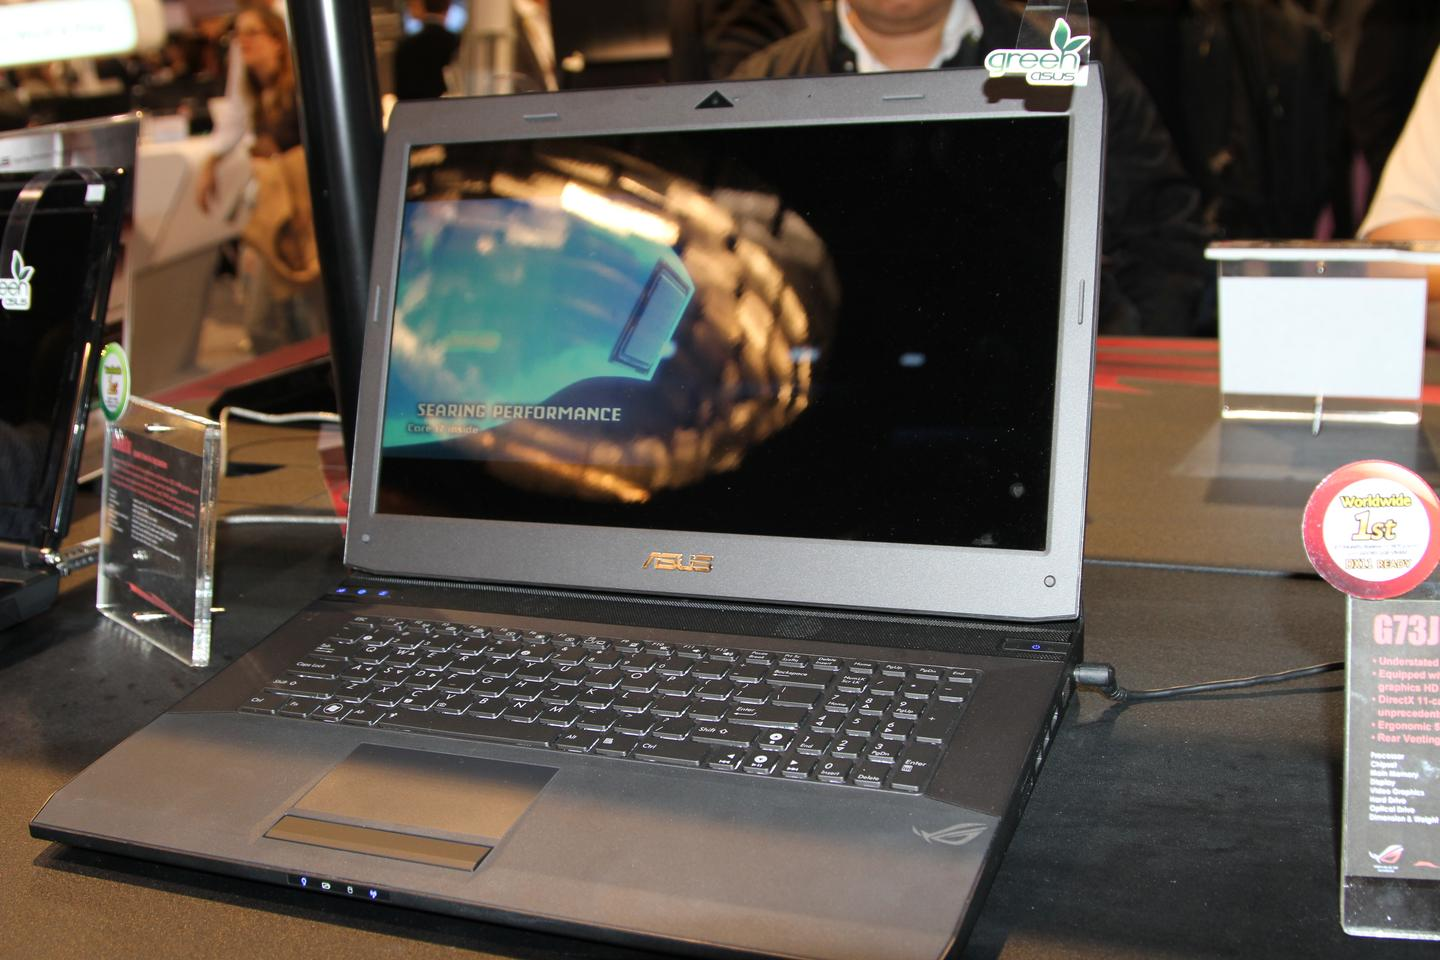 The G73Jh on display at CES 2010